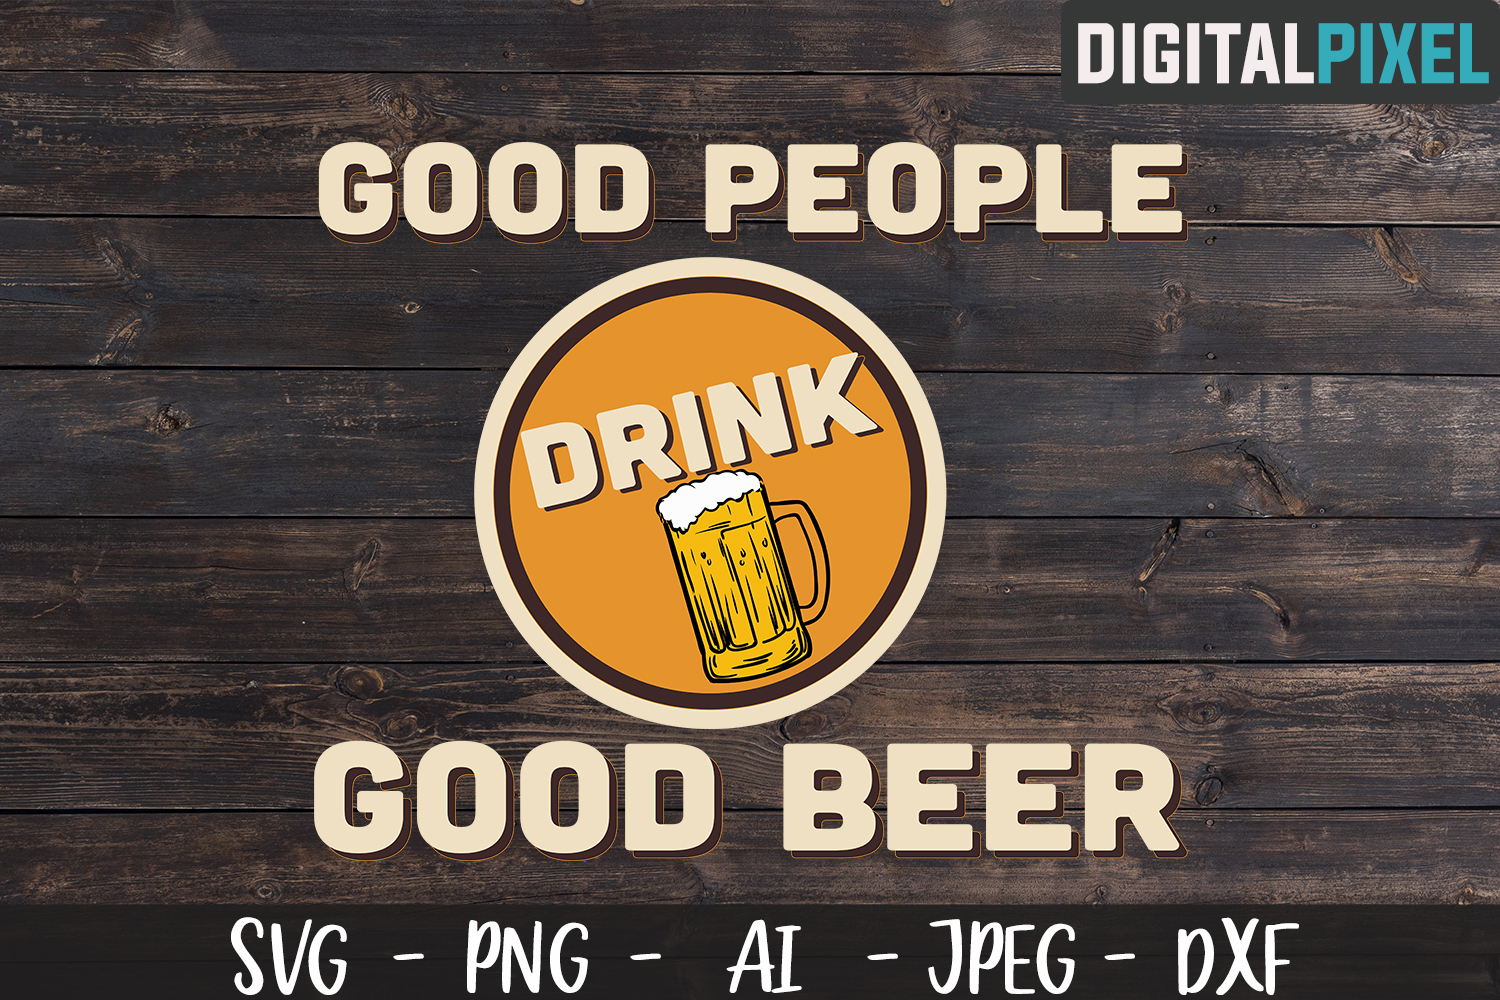 Good People Drink Good Beer SVG PNG DXF Circut | Crafters example image 1